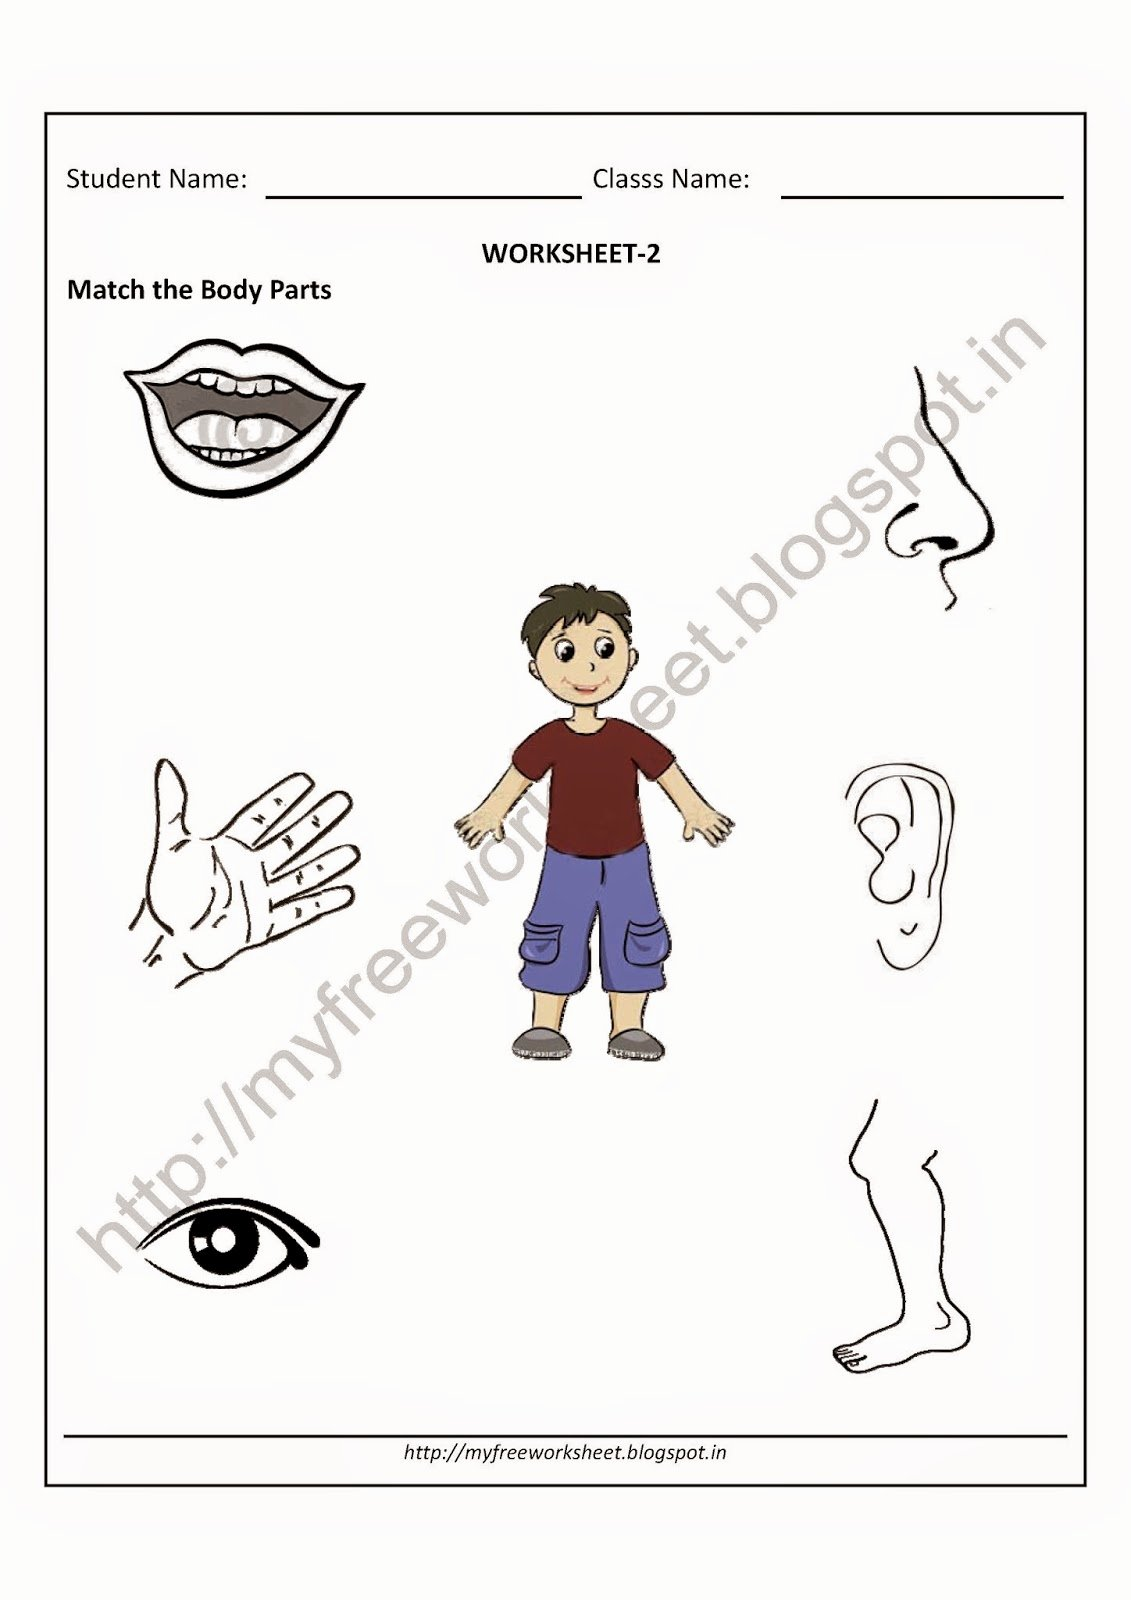 Body Parts Worksheets for Preschoolers Inspirational Pdf Free for Nursery Kids Match the Body Parts Worksheet Evs